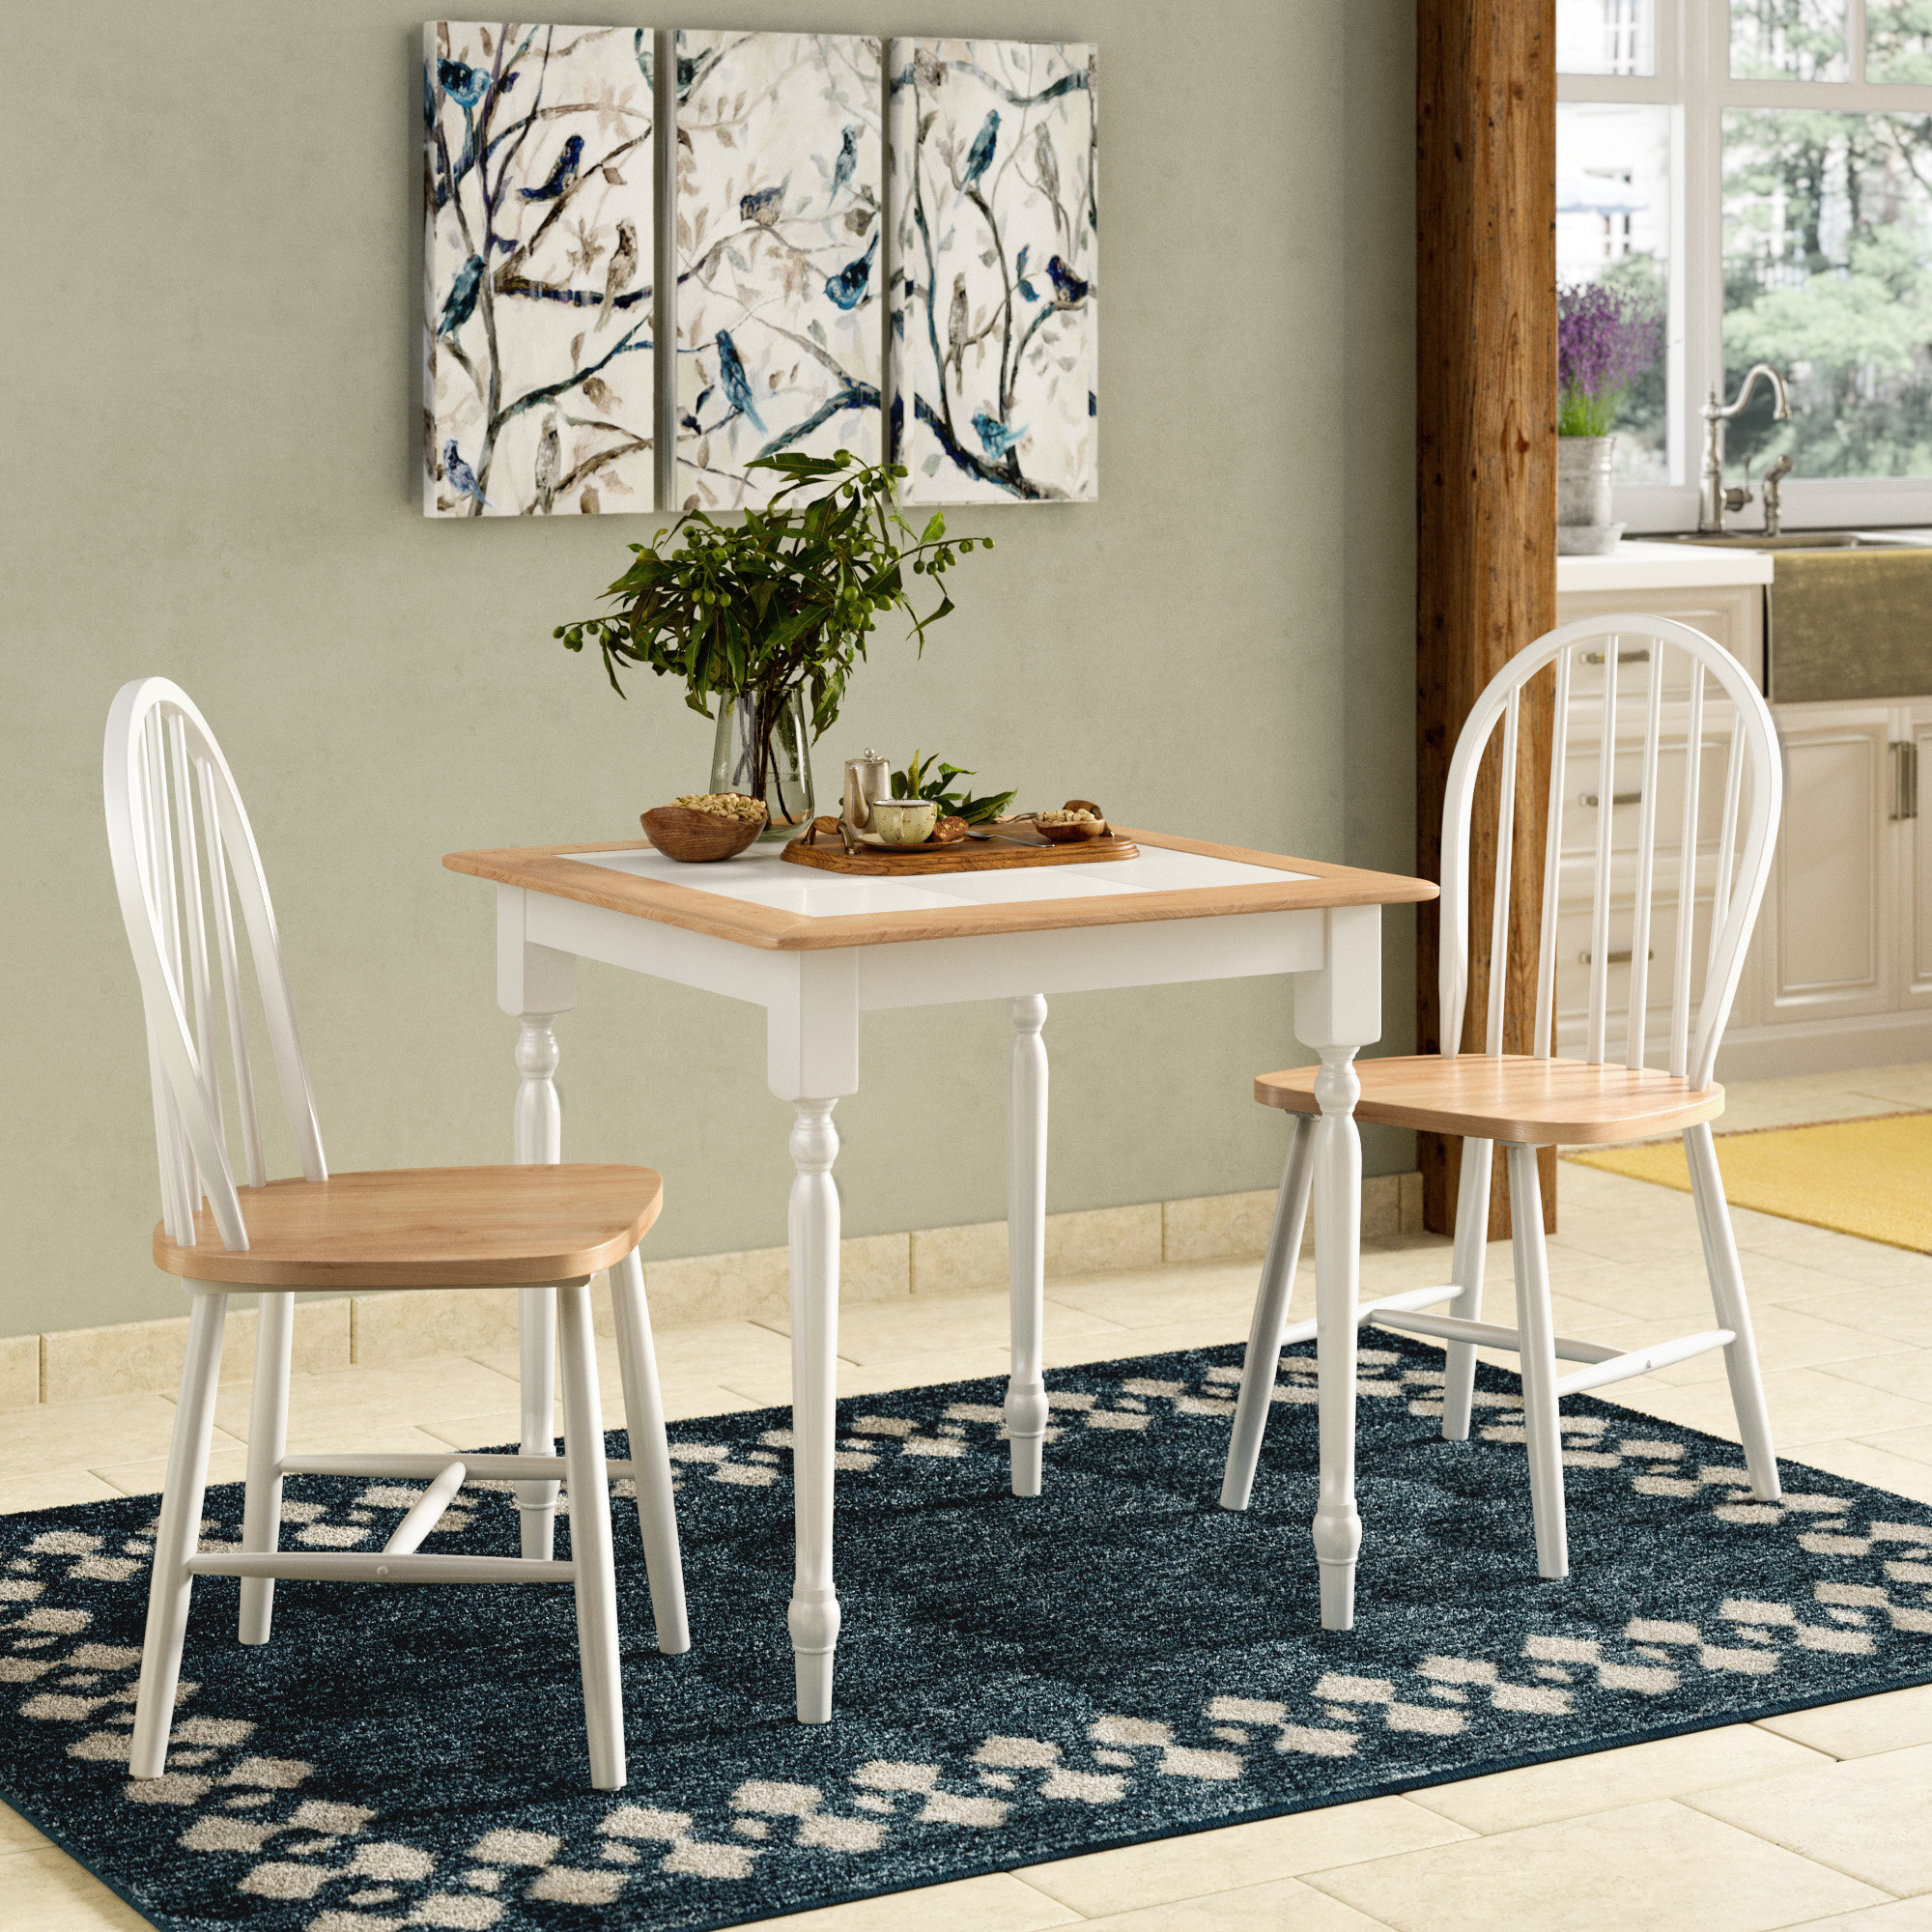 Llanas 3 Piece Dining Set In Most Up To Date Kinsler 3 Piece Bistro Sets (View 4 of 20)